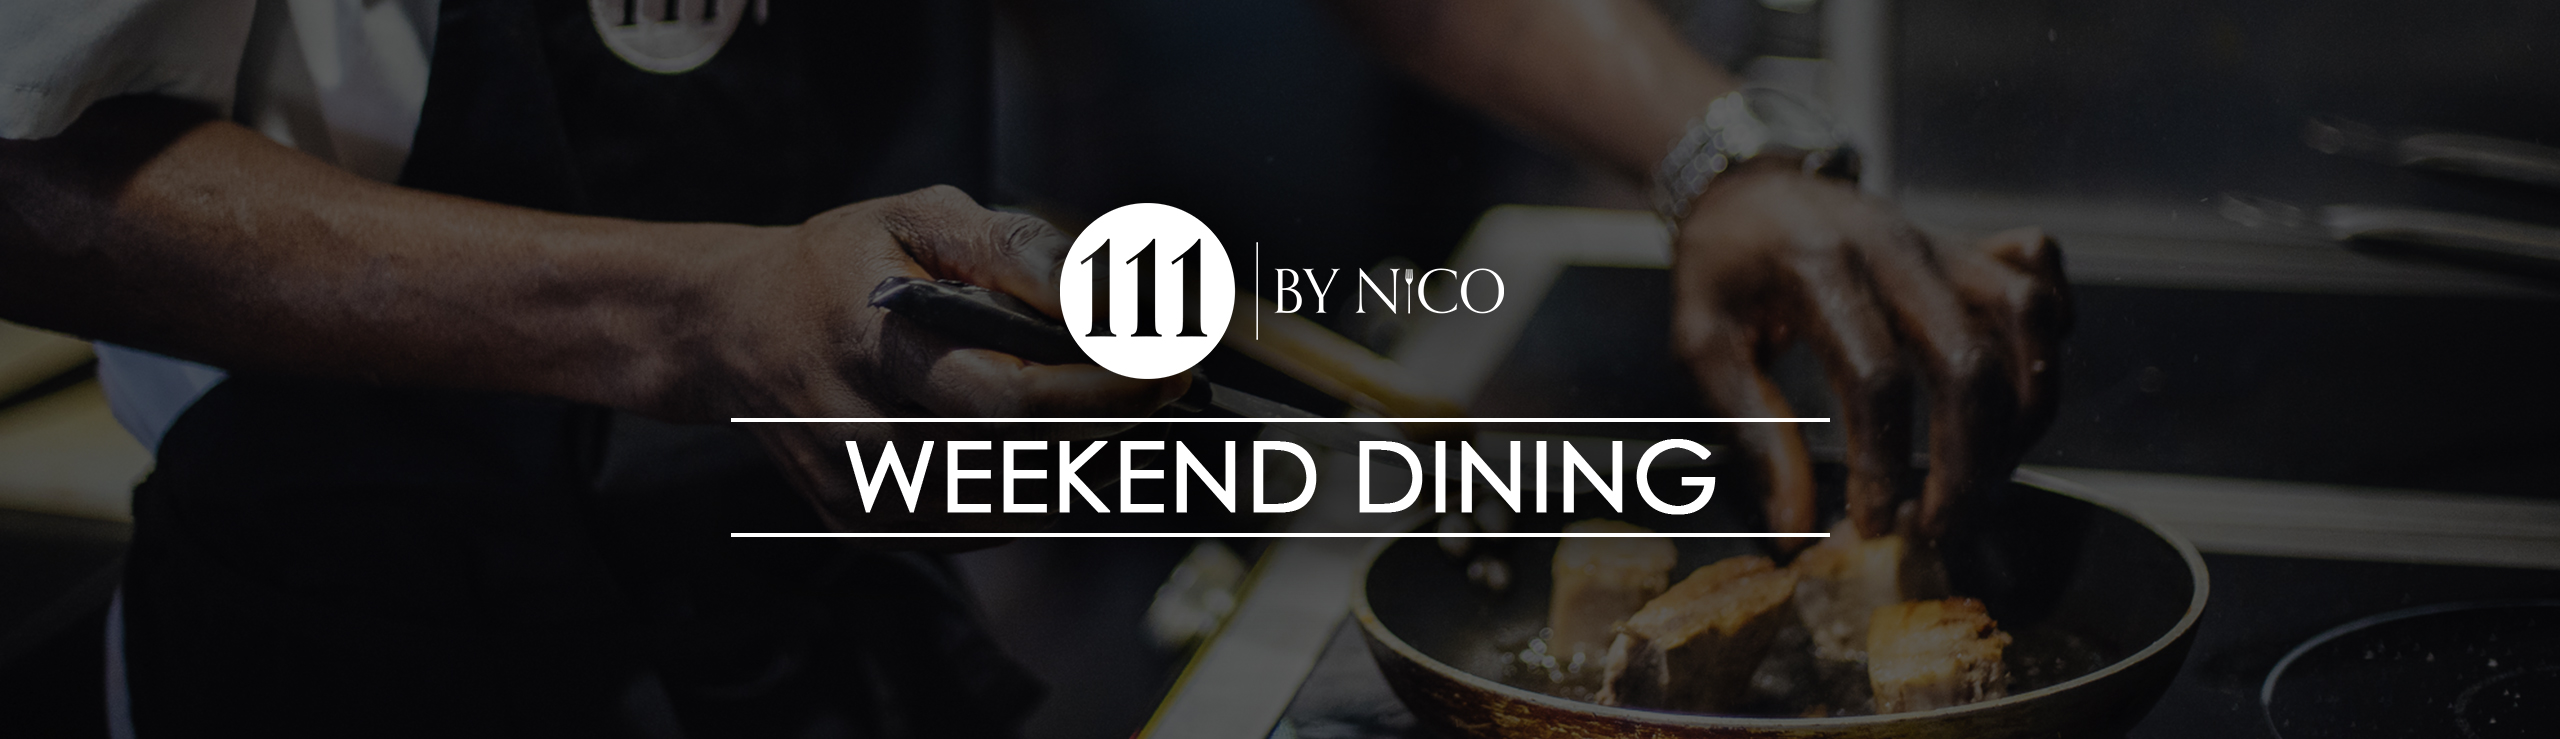 weekend dining at 111 by nico